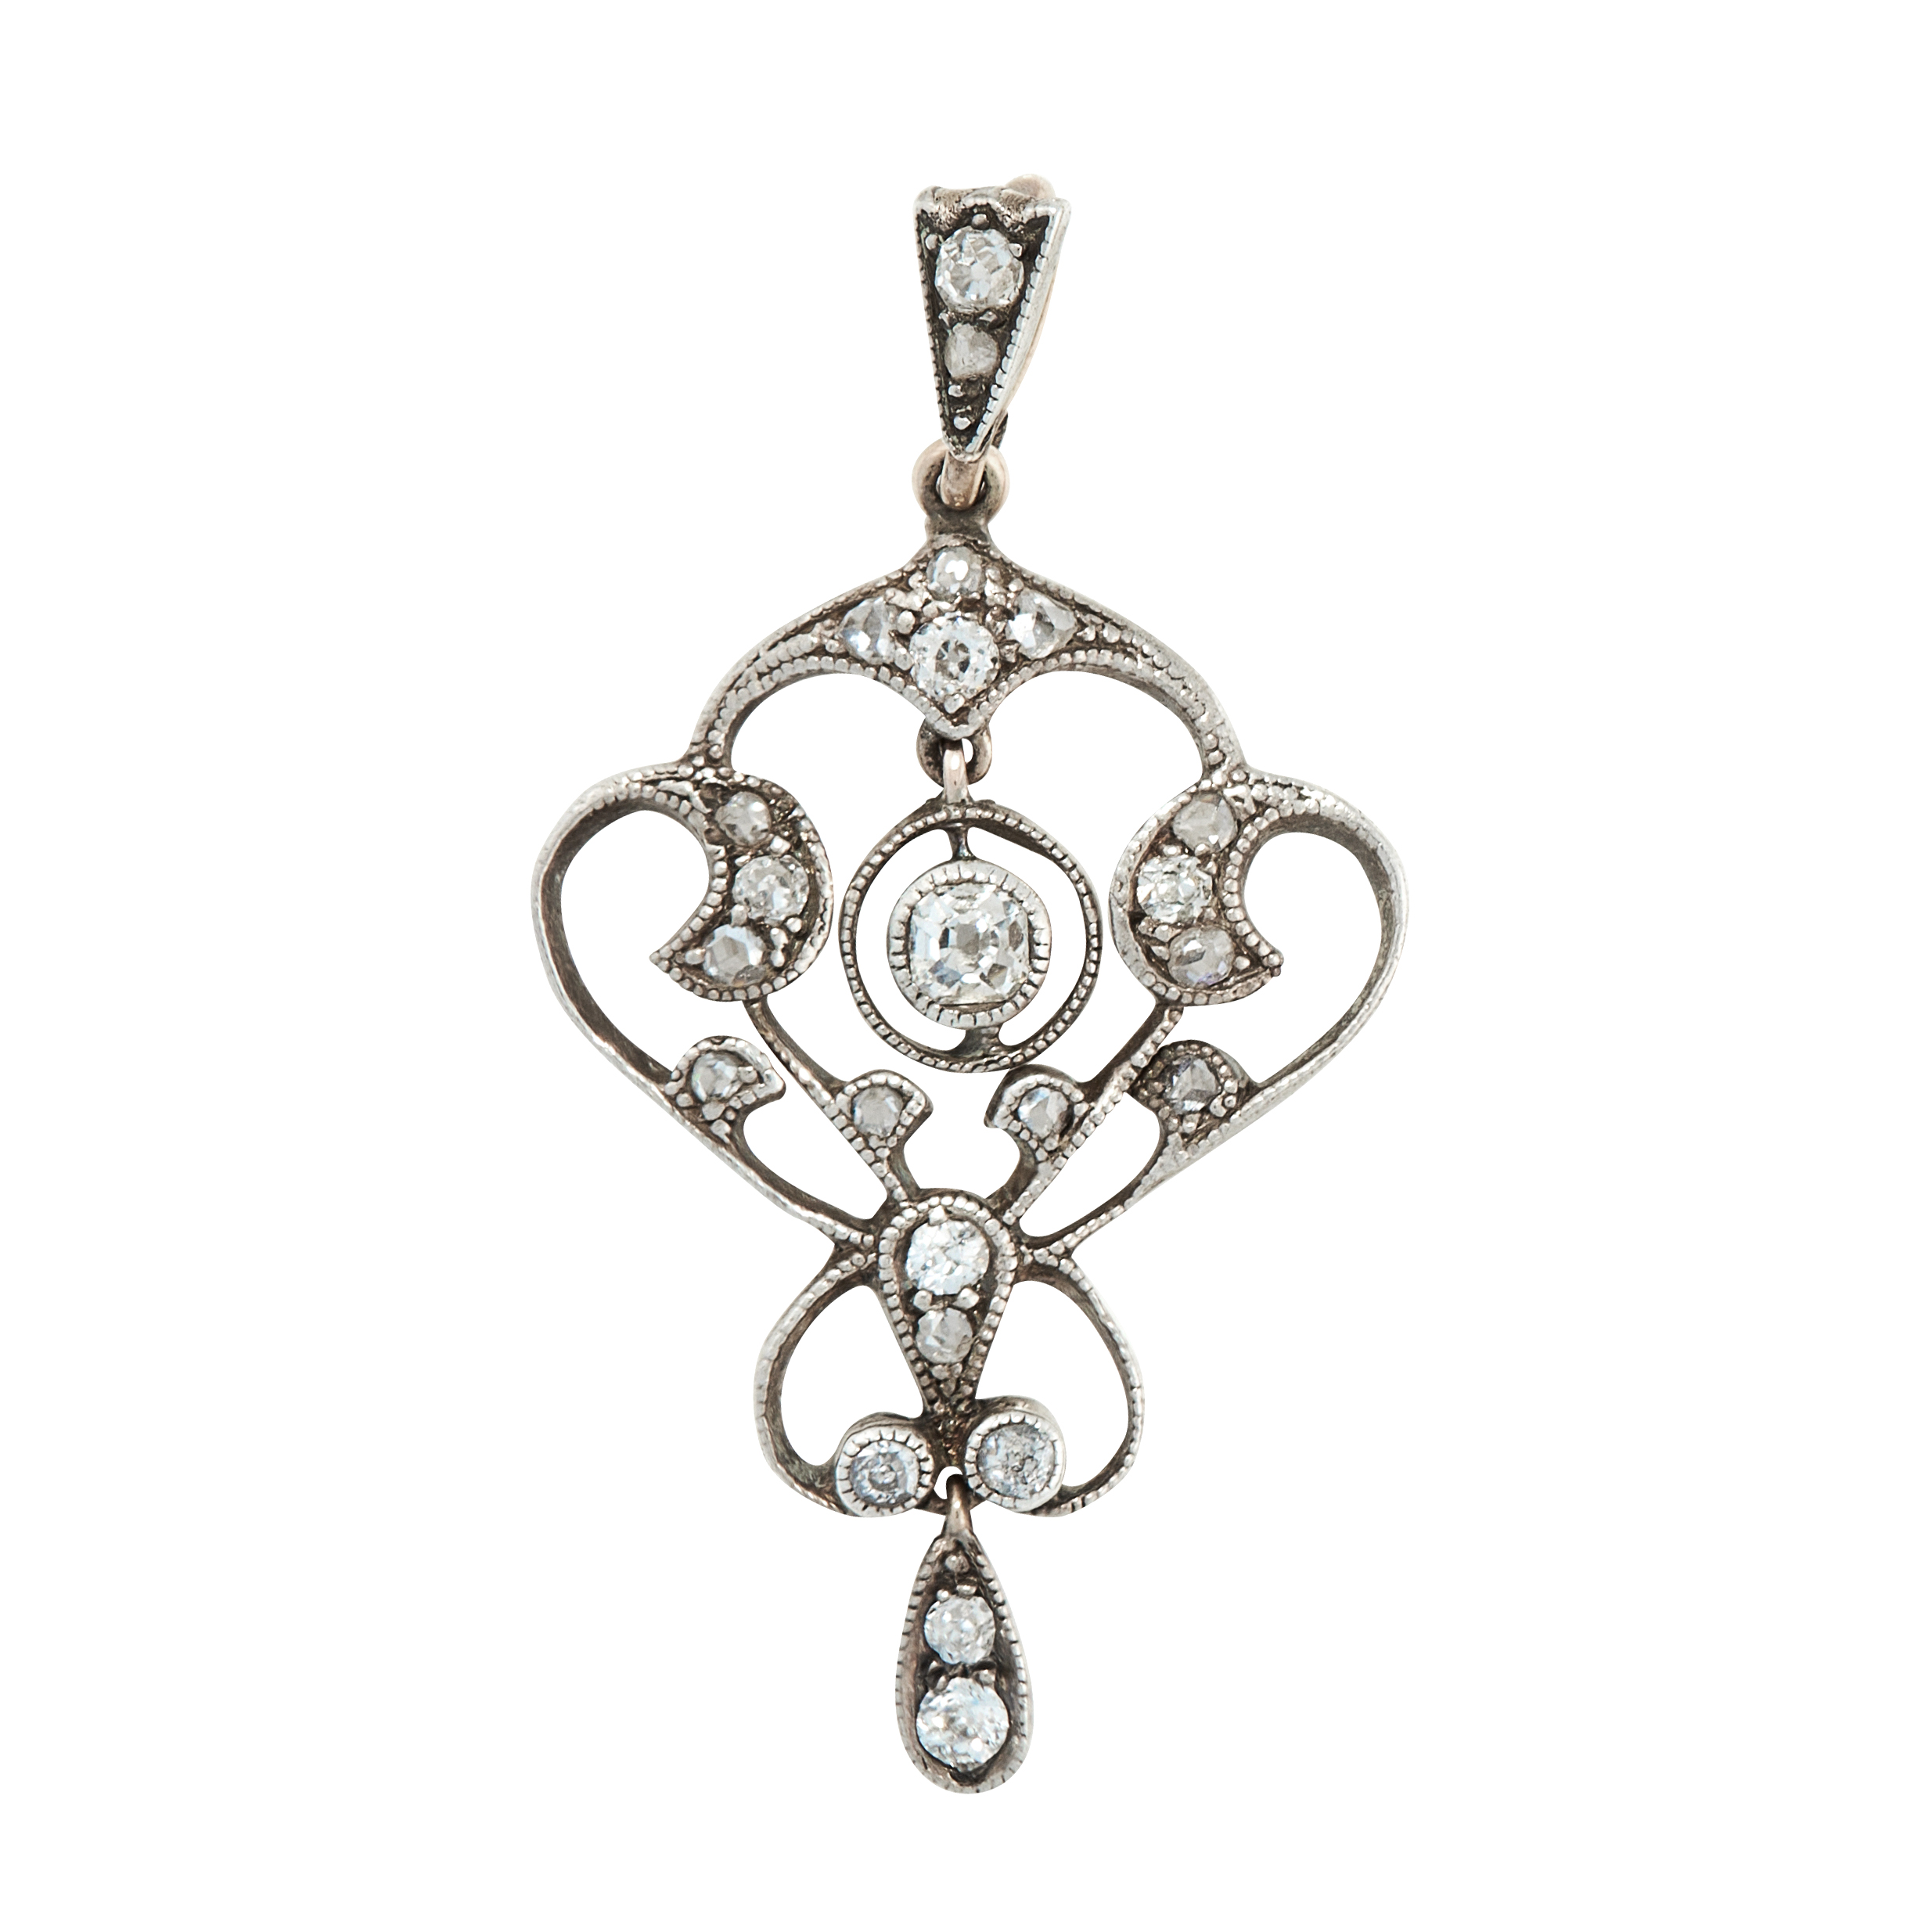 AN ANTIQUE DIAMOND PENDANT, EARLY 20TH CENTURY of scrolling design, set with old cut and rose cut